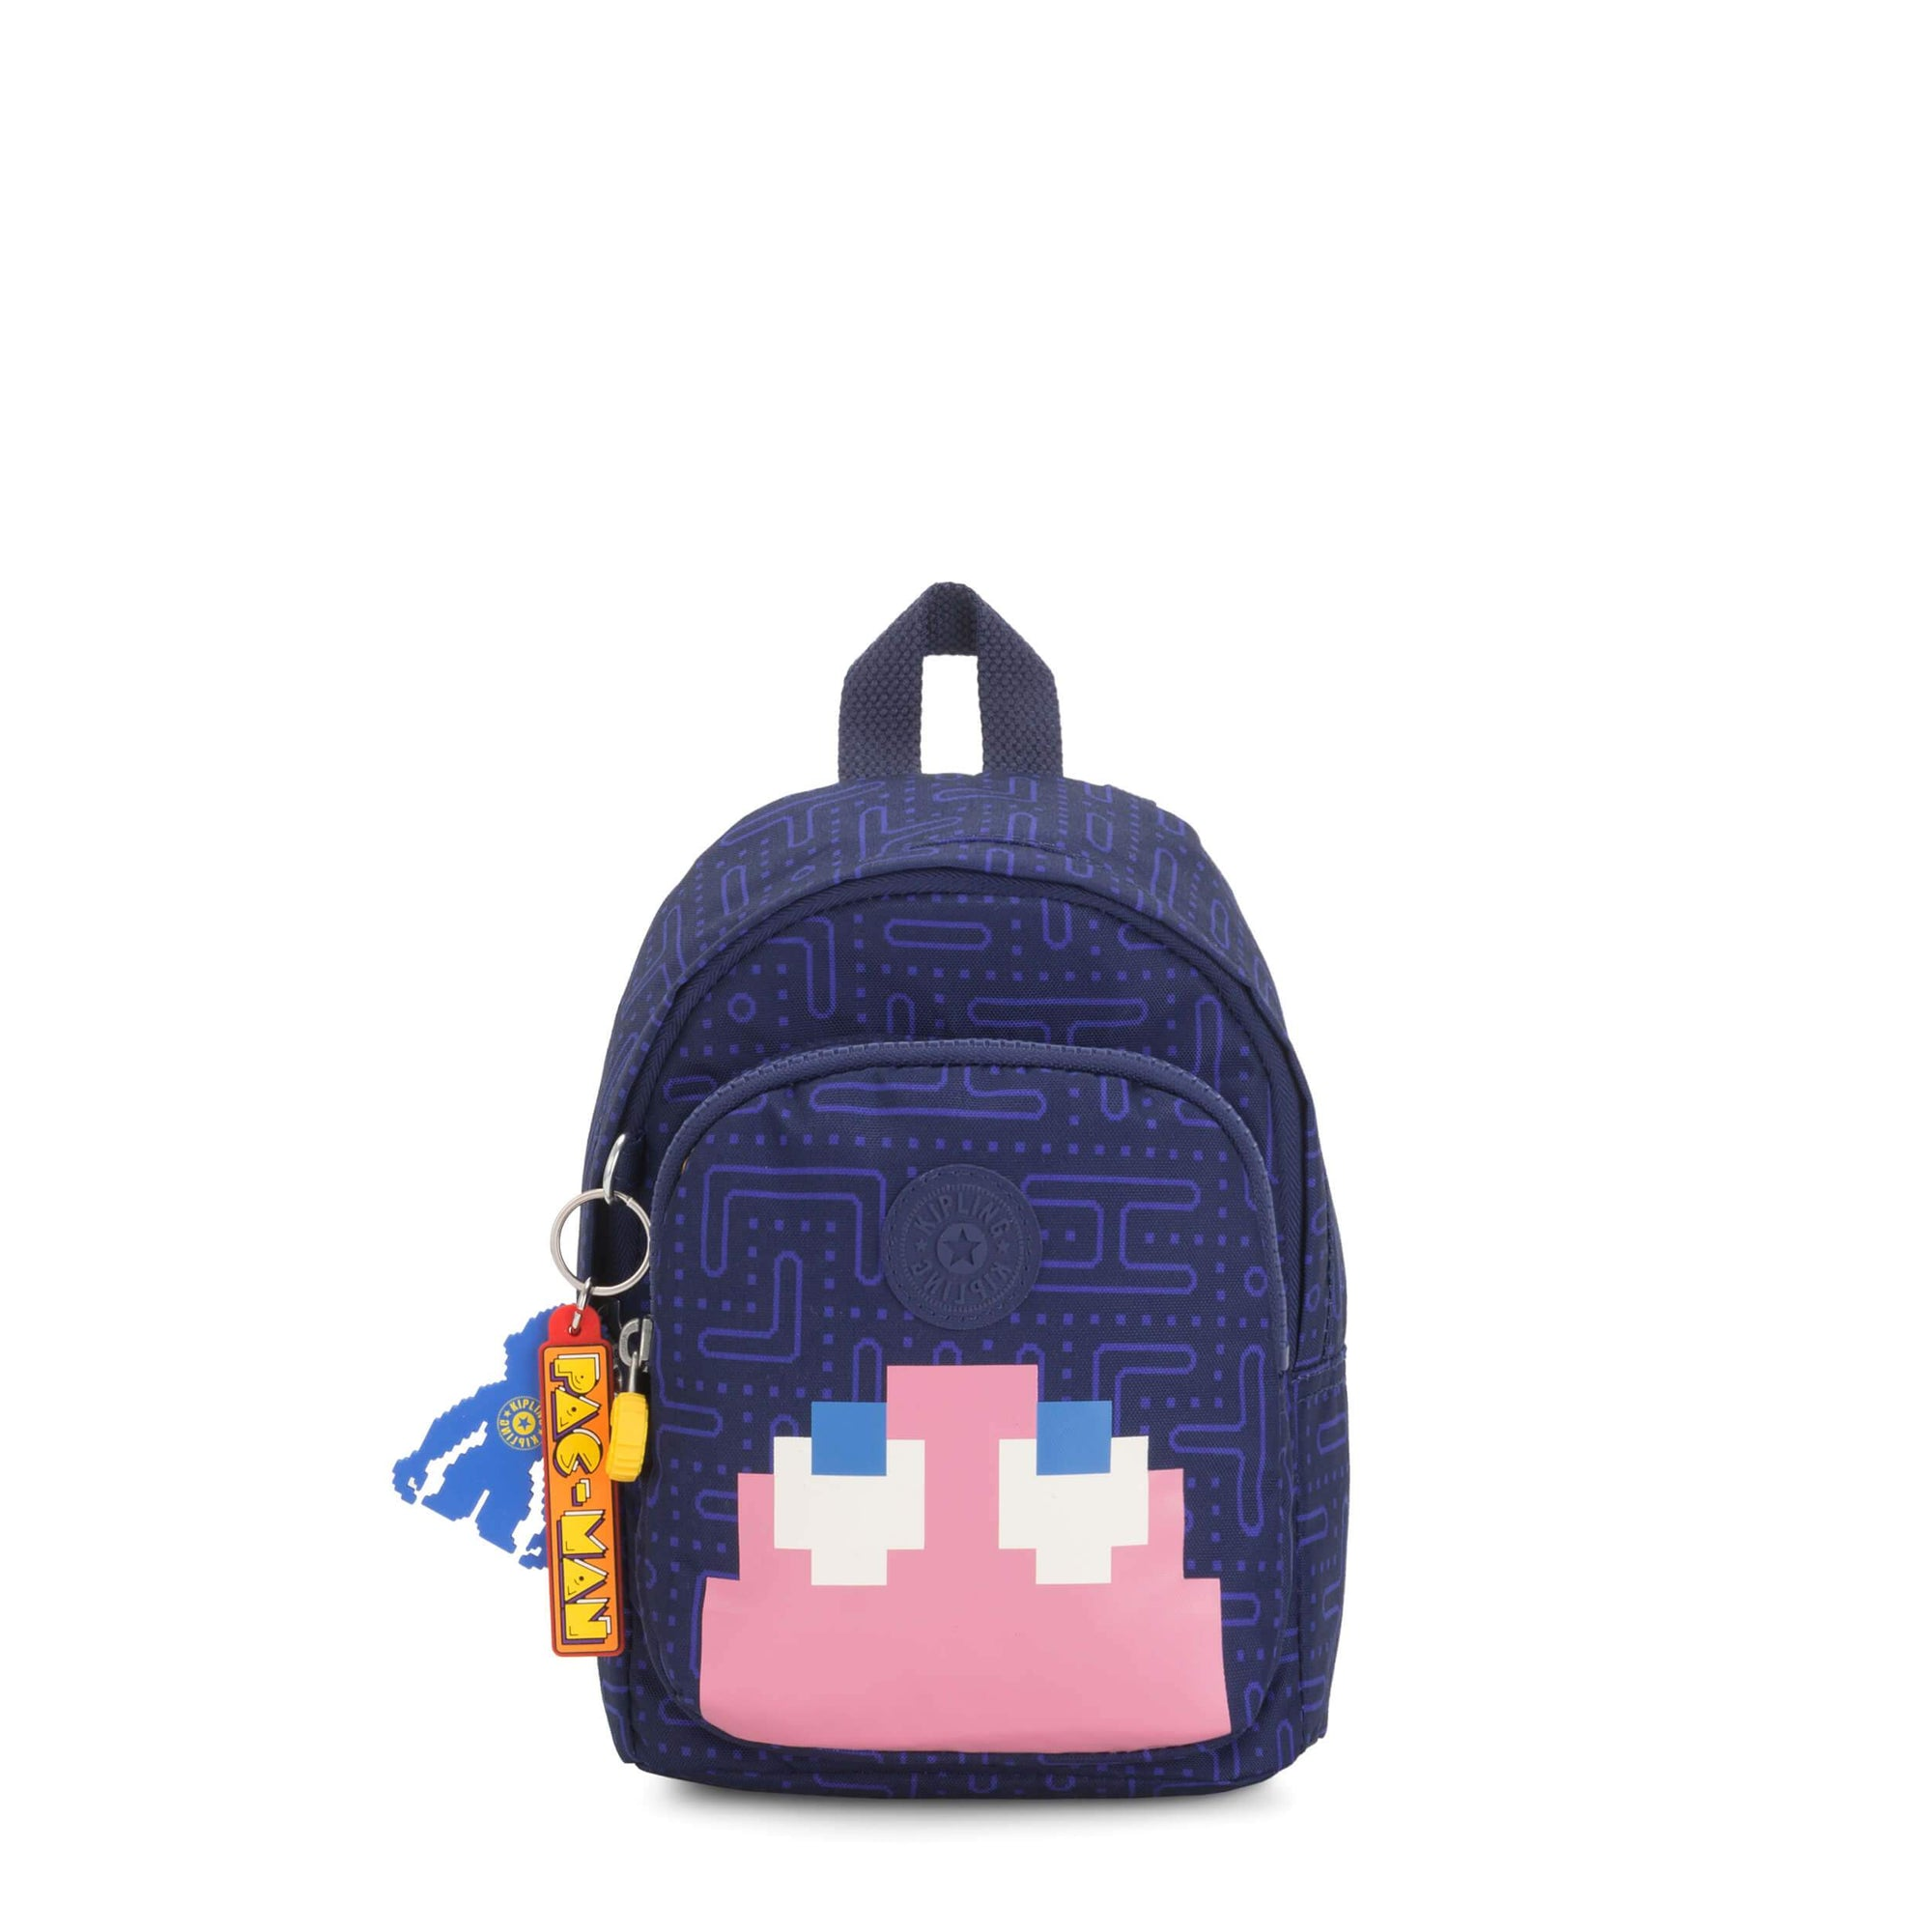 Backpack Kipling Delia Compact Pac Man Good KI438855J